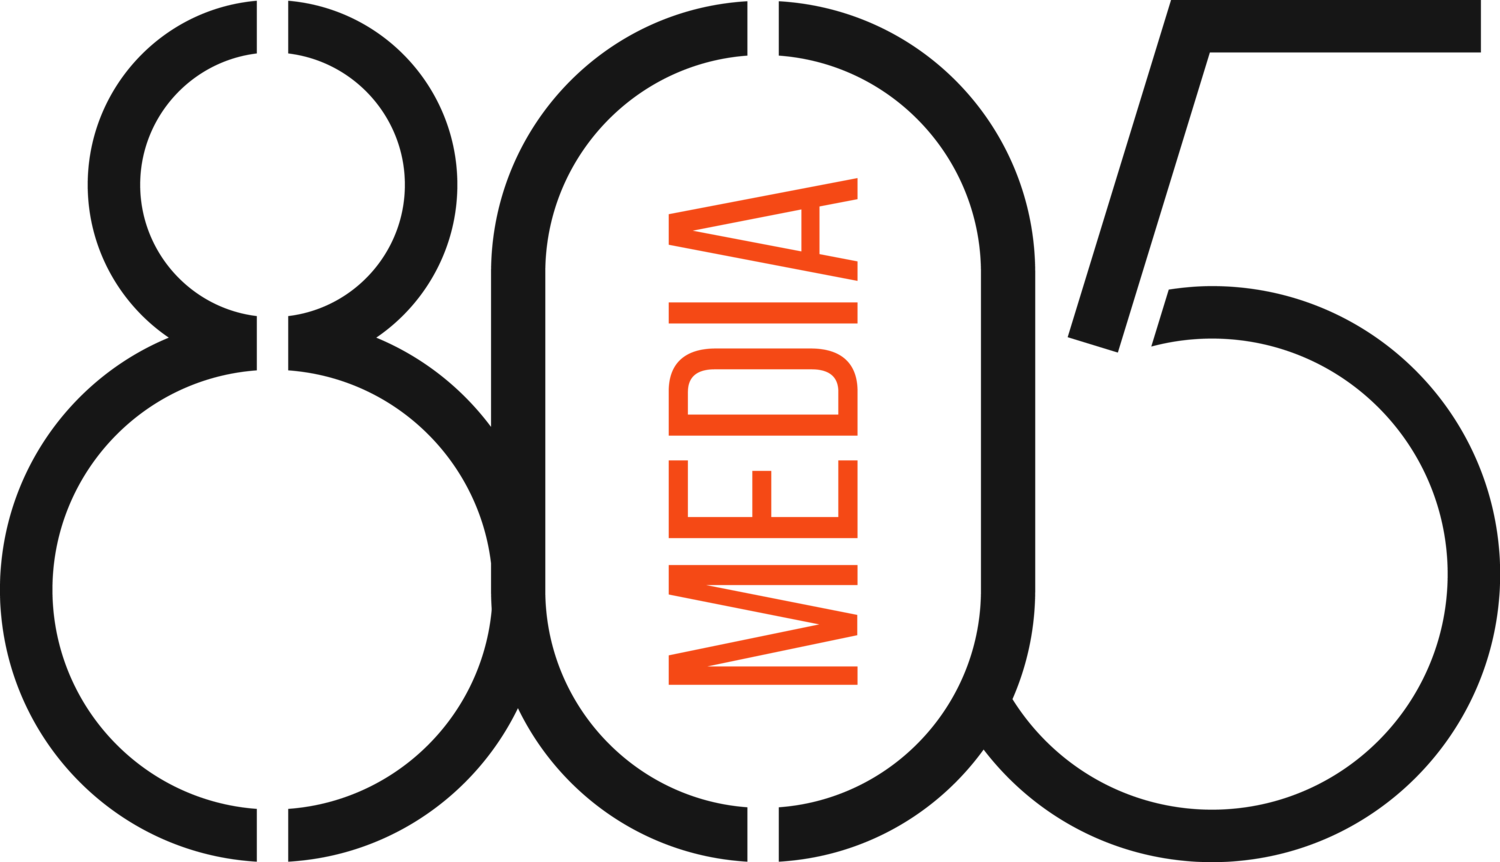 805.MEDIA :: Media Production Company | 4K Videographer |  Photographer | 4K Drone